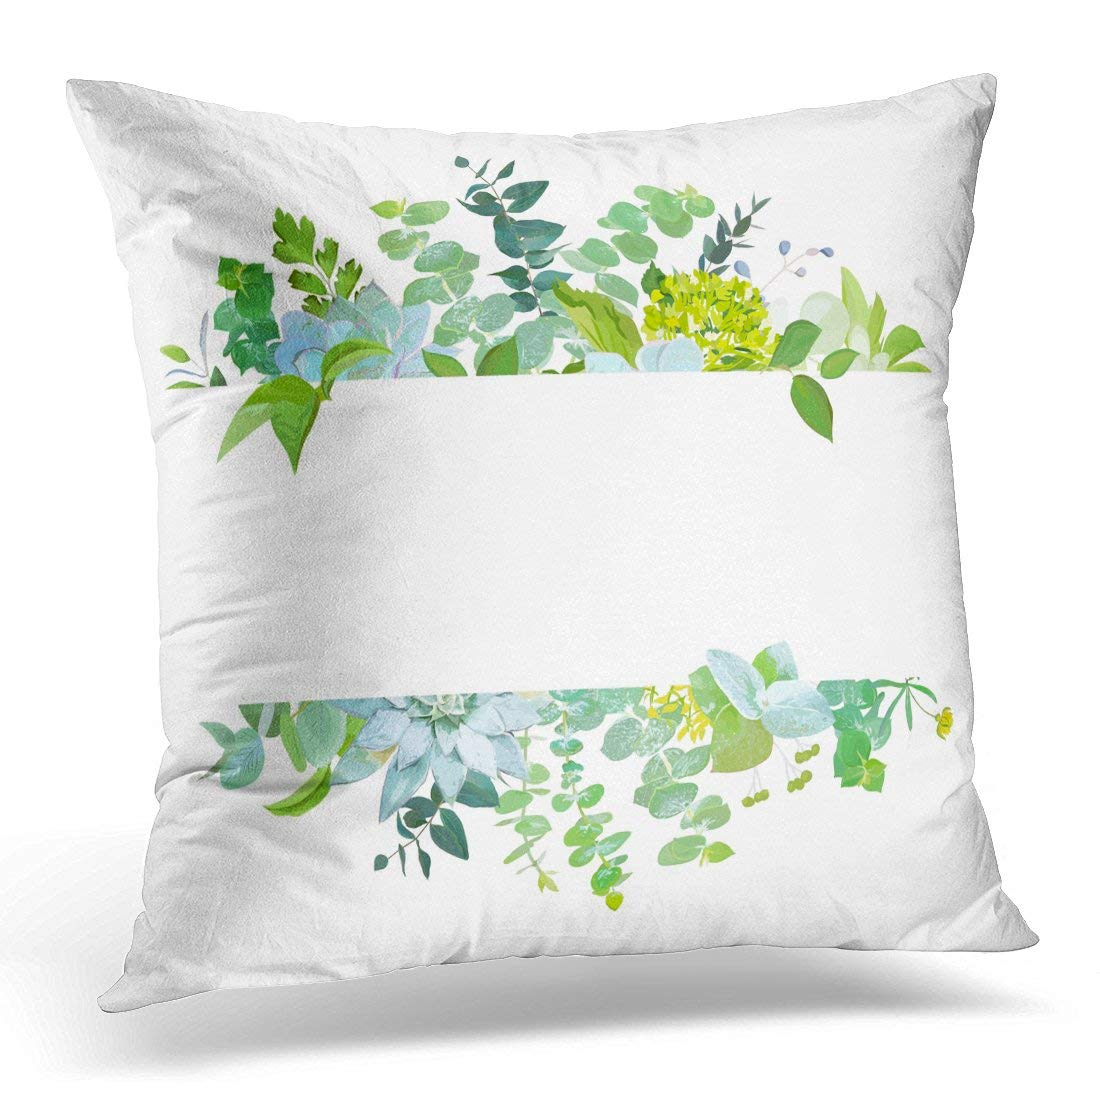 Bsdhome Horizontal Botanical Baby Blue Eucalyptus Succulents Green Hydrangea Wildflowers Various Plants Leaves Pillow Case Pillow Cover 20x20 Inch Walmart Canada